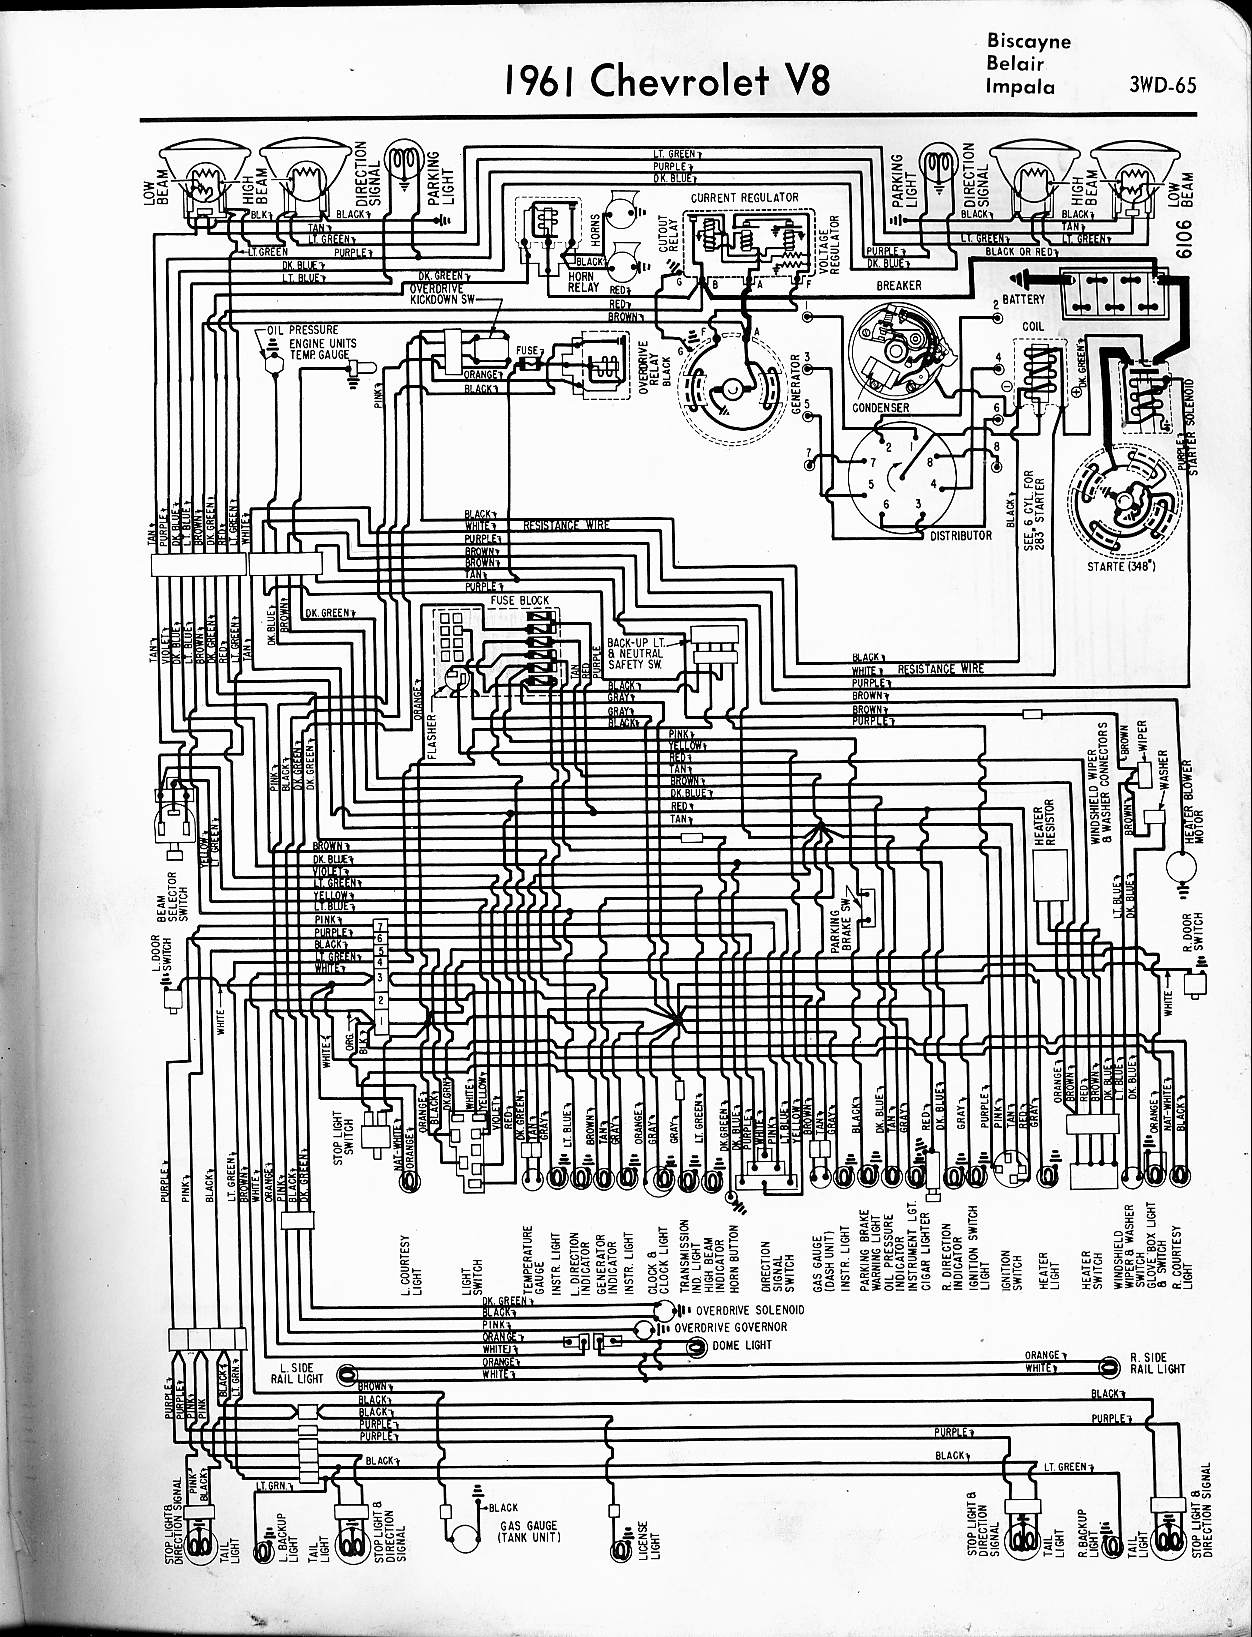 1961 chevy starter wiring diagram 1961 chevy impala wiring diagram